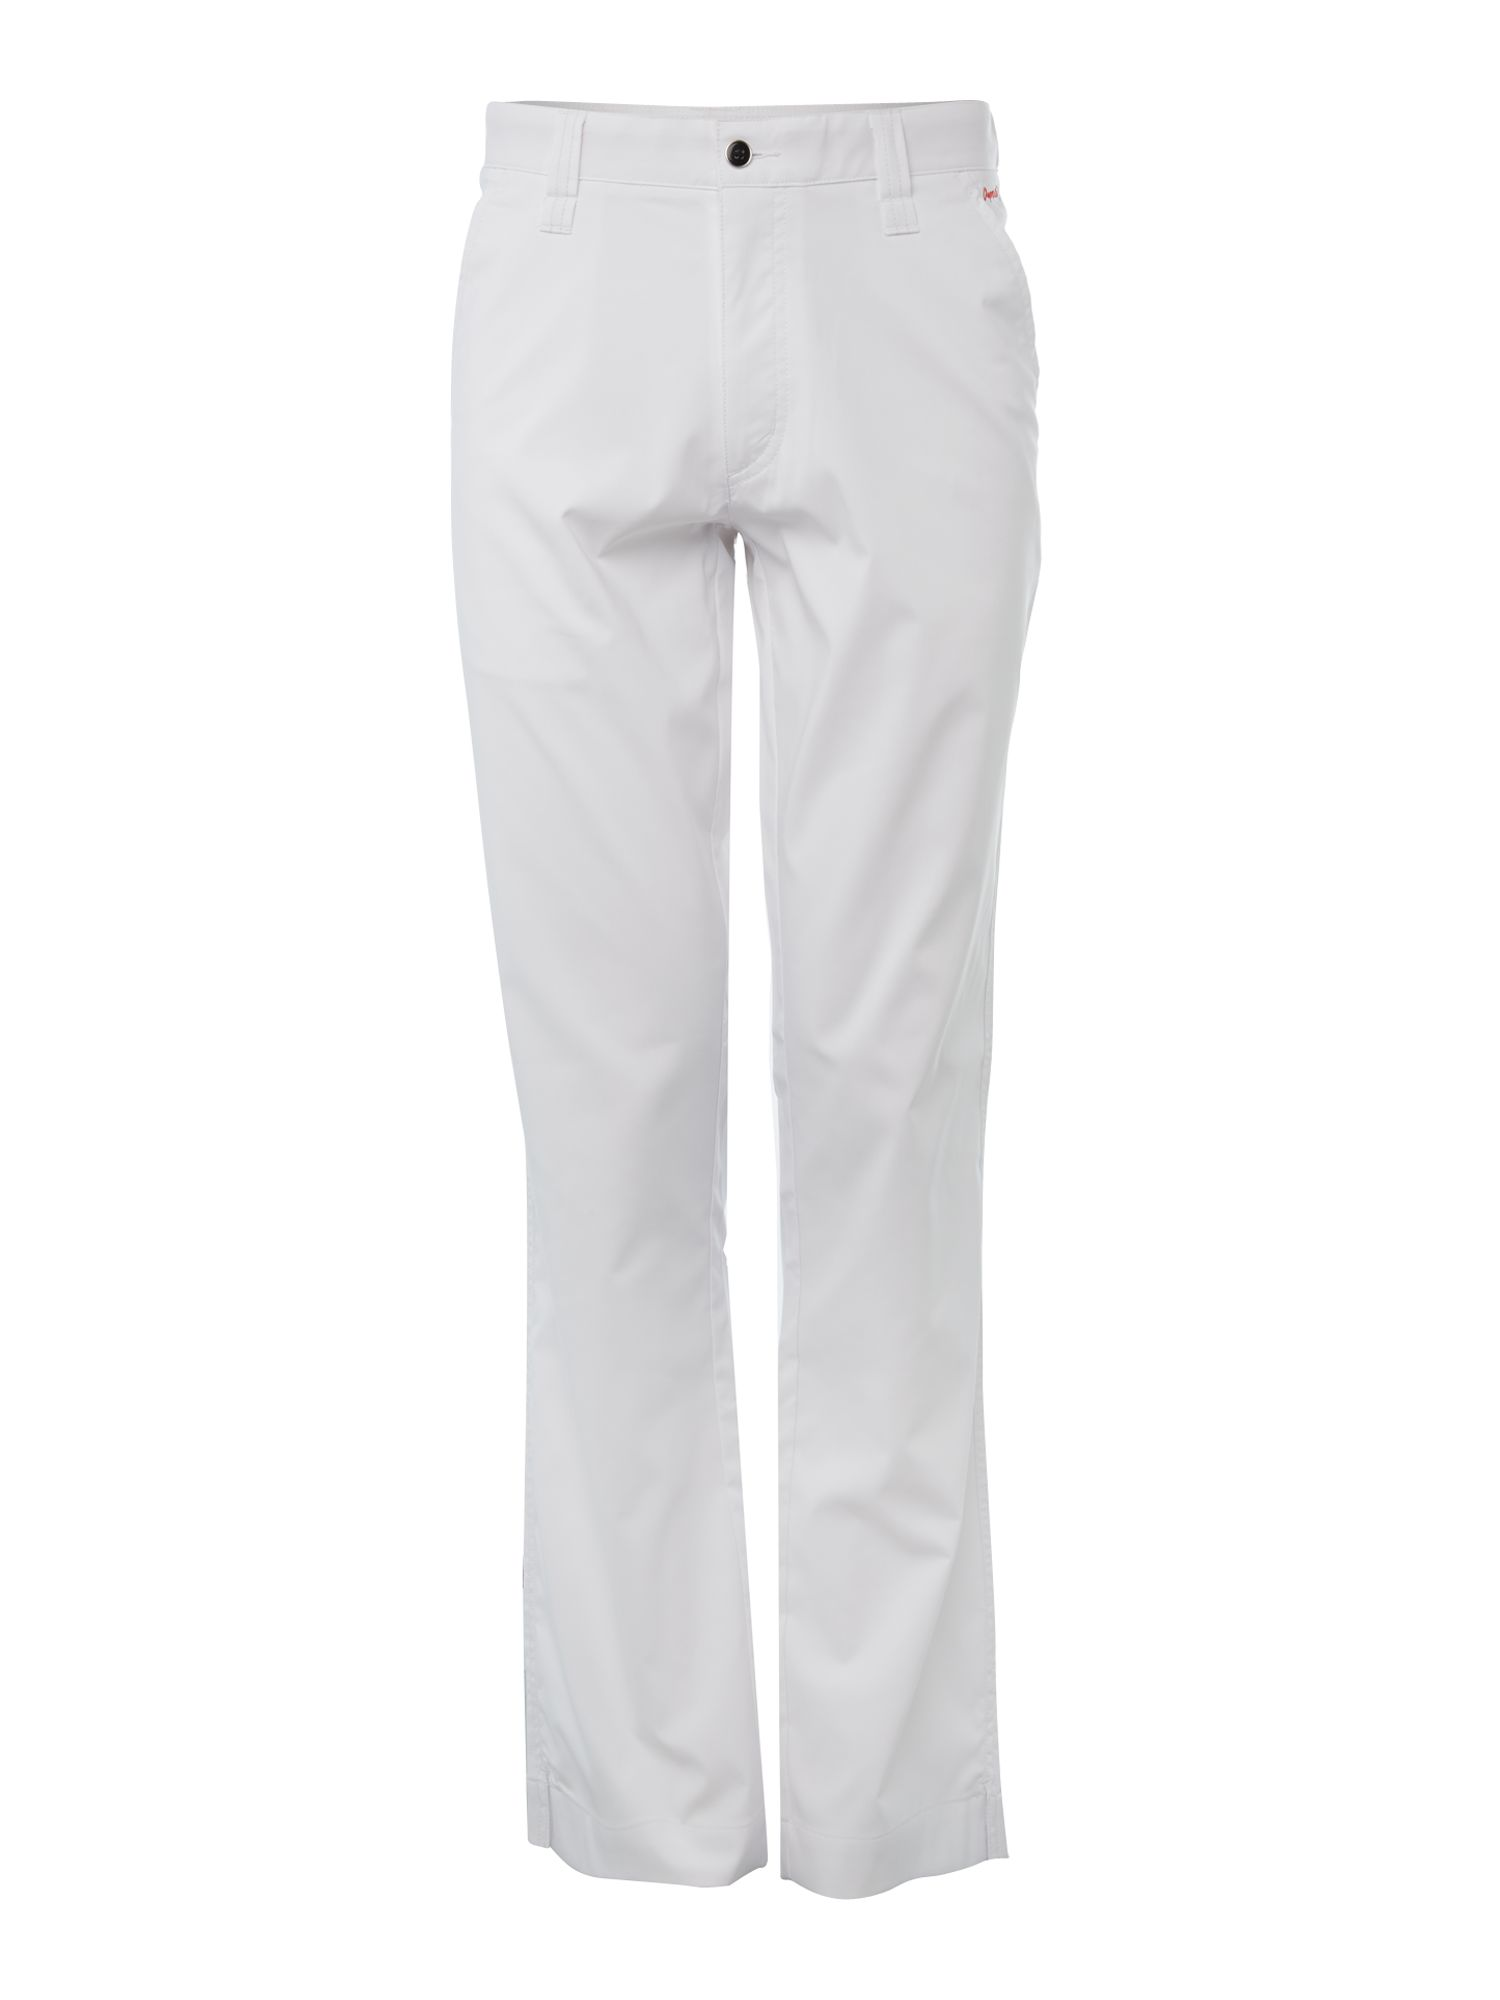 Dwyers and Co Men's Dwyers and Co Micro tech 2.0 trouser, White